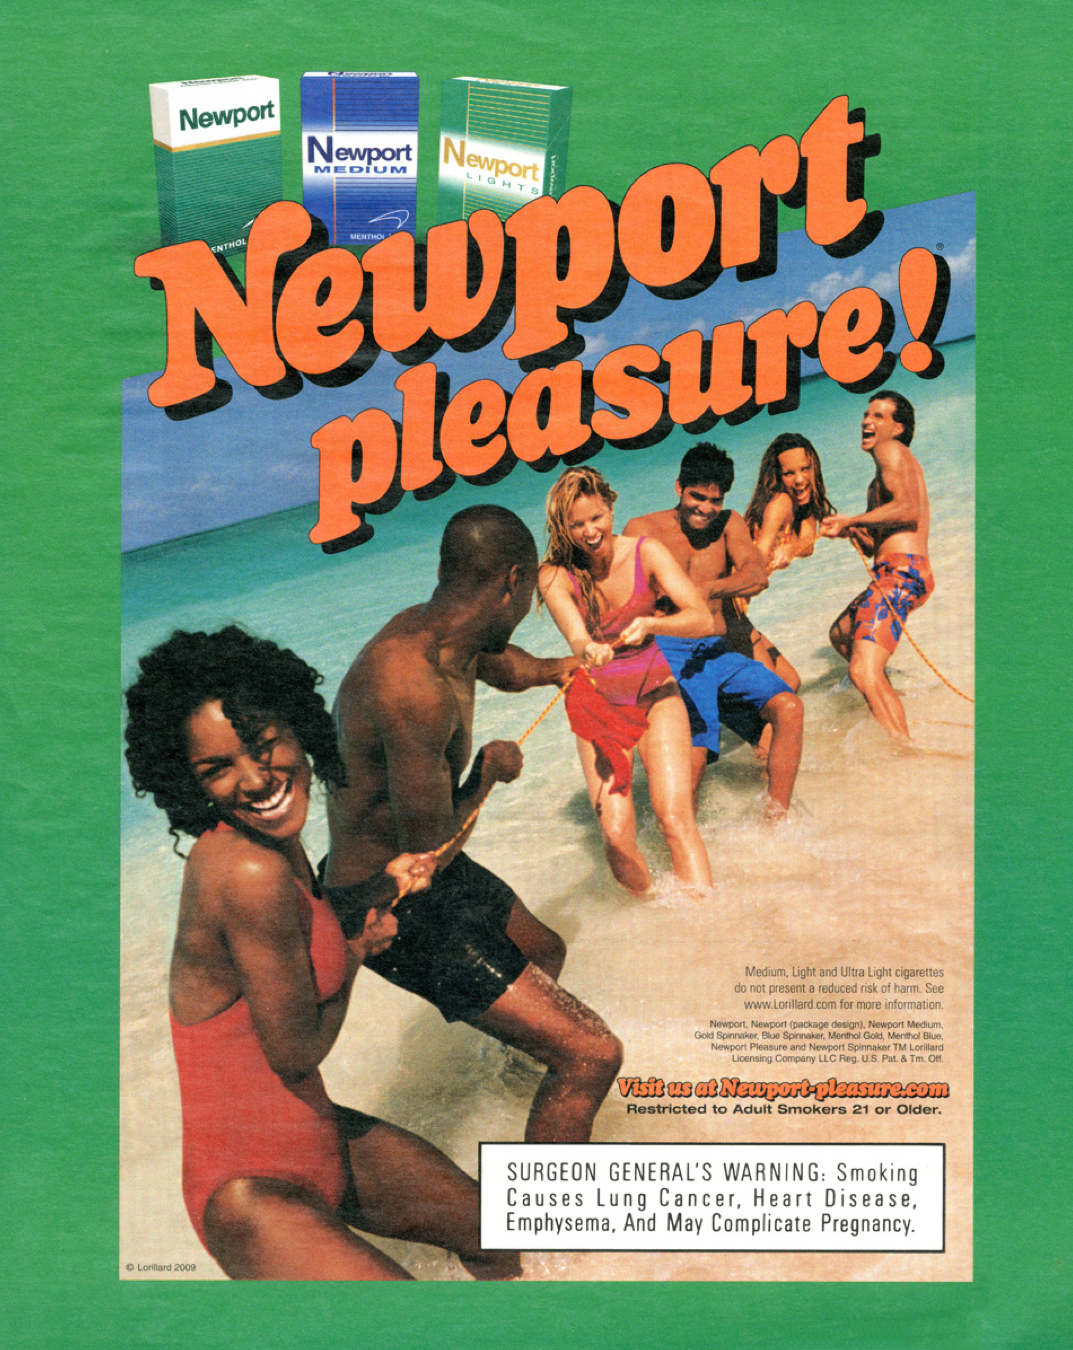 Newport pleasure ad